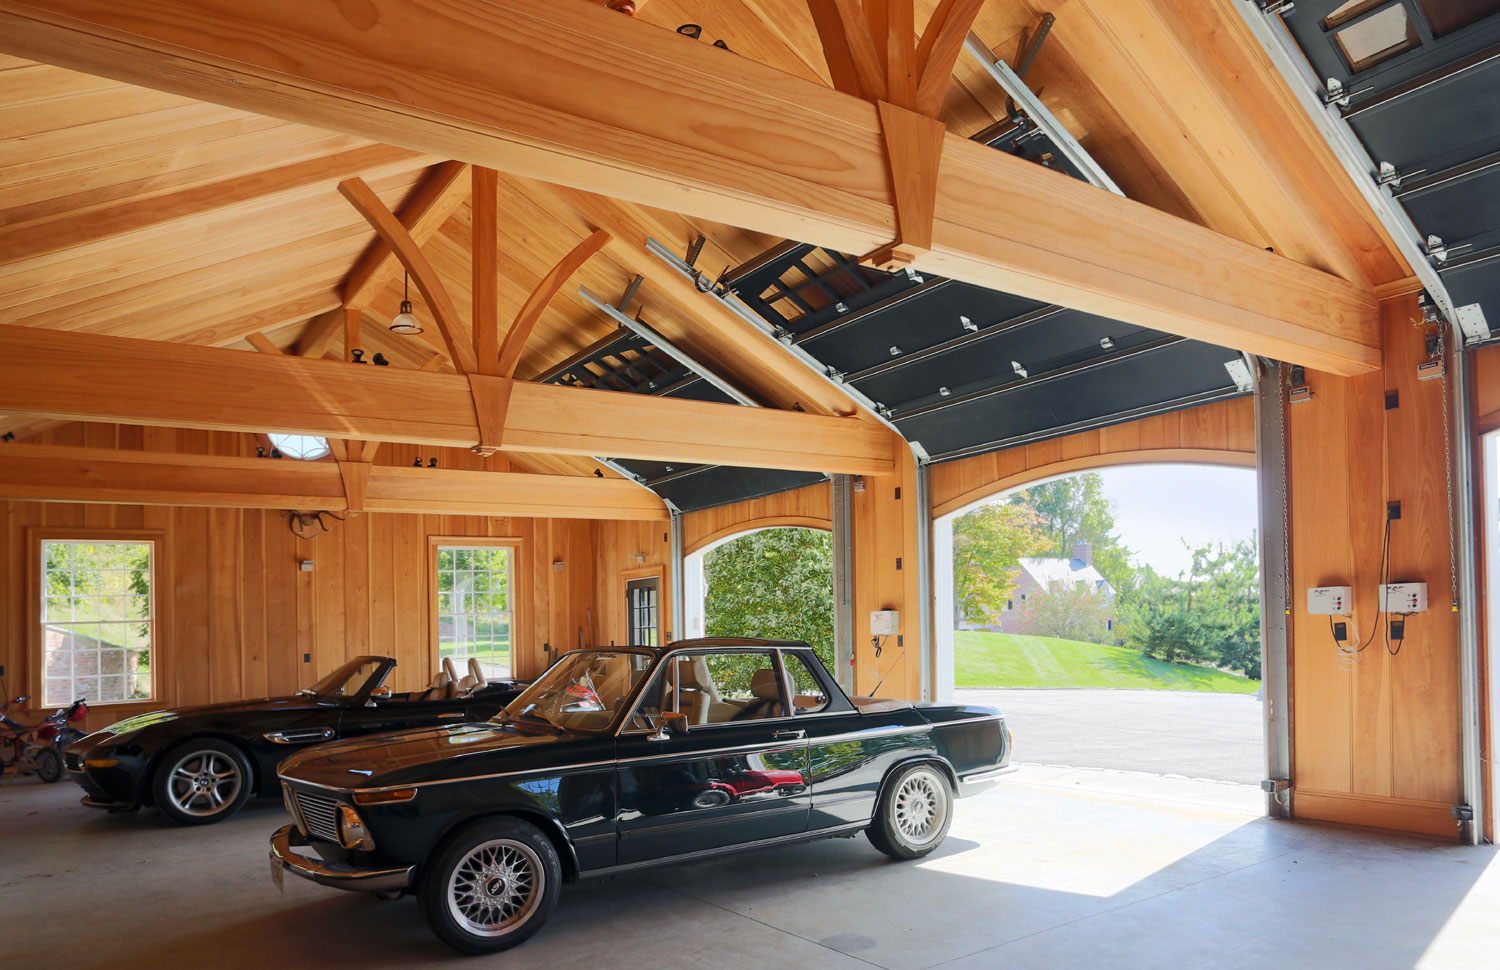 Best of show dream homes for car collectors for Car collector garage plans